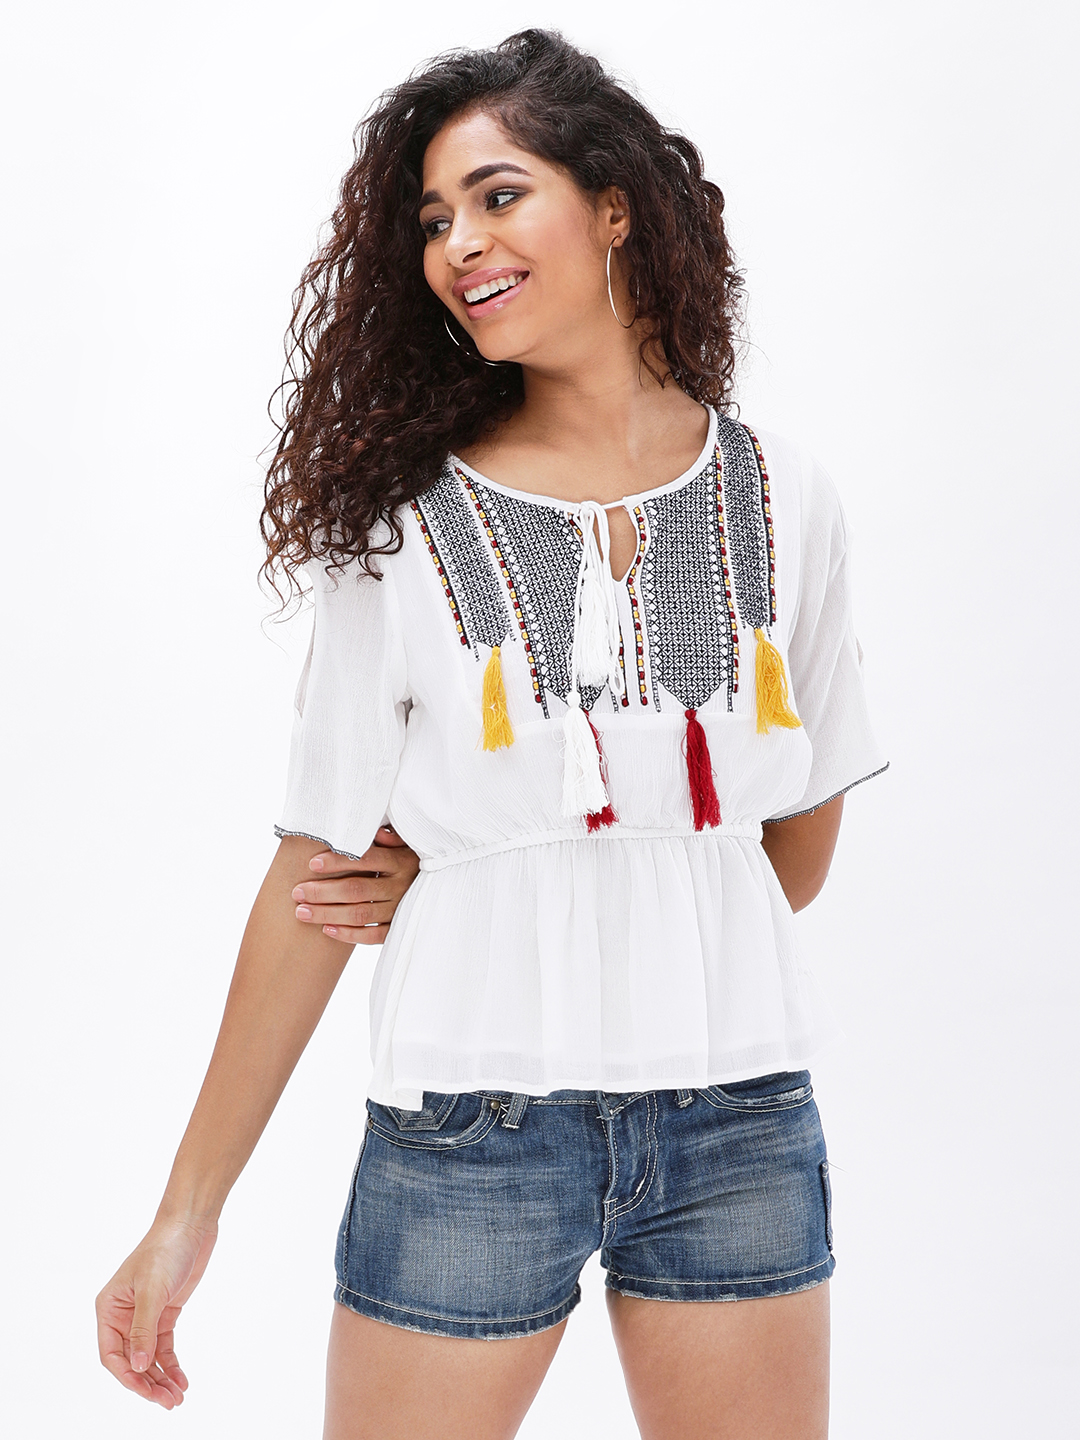 MIWAY White Embroidery & Tassel Detail Peplum Top 1